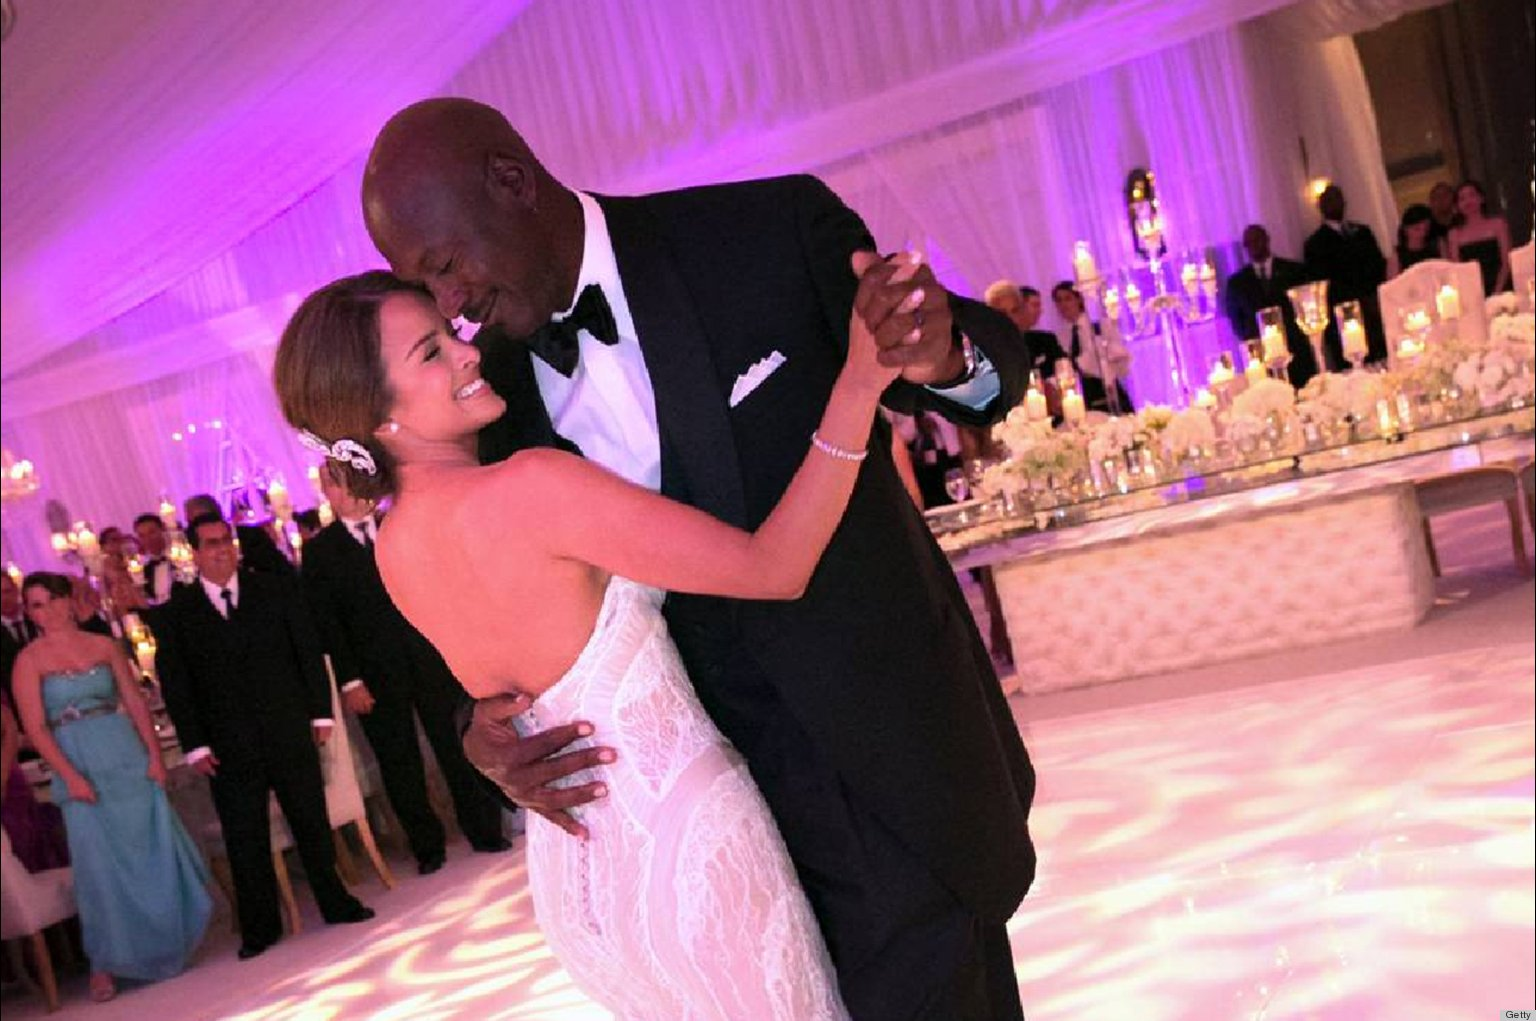 Yvette Prieto Michael Jordan Could Store Those Wedding Gifts In Their Enormous House PHOTOS